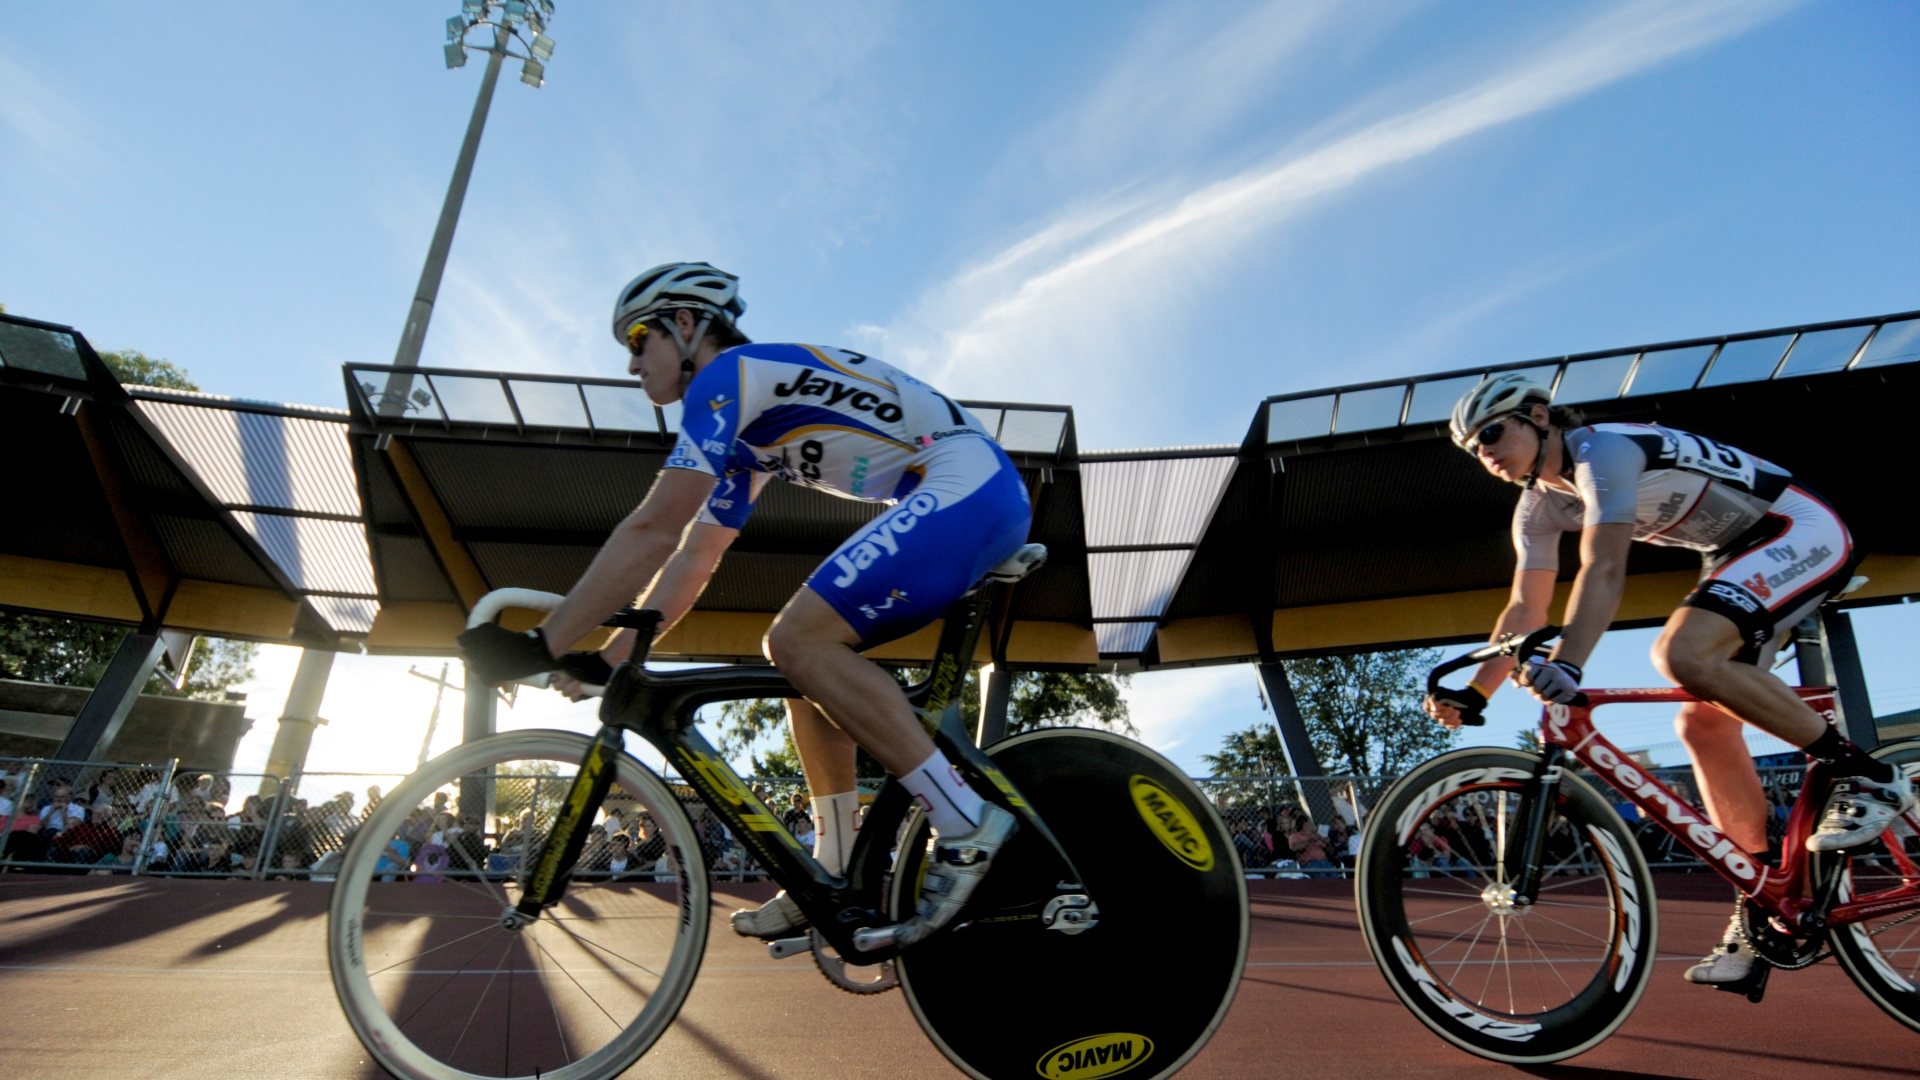 Cycling events in Bendigo